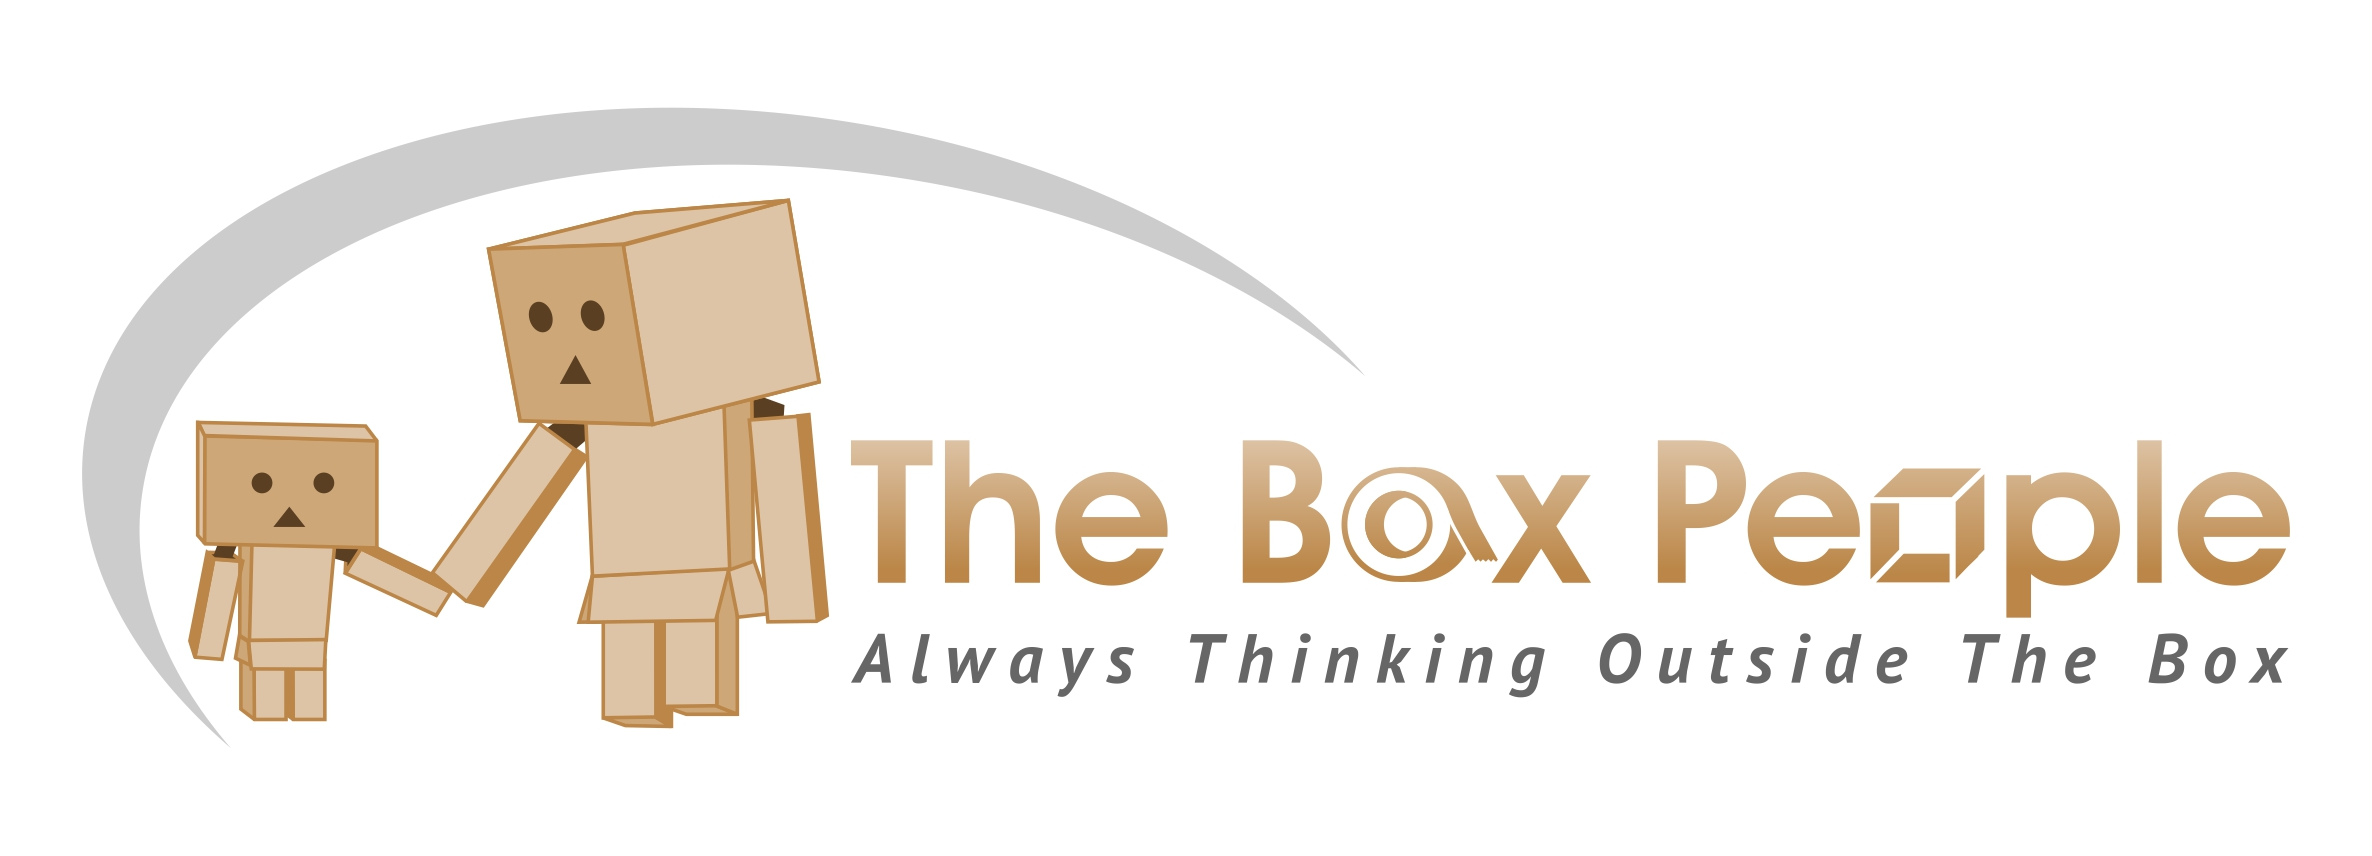 Read The Box People Reviews